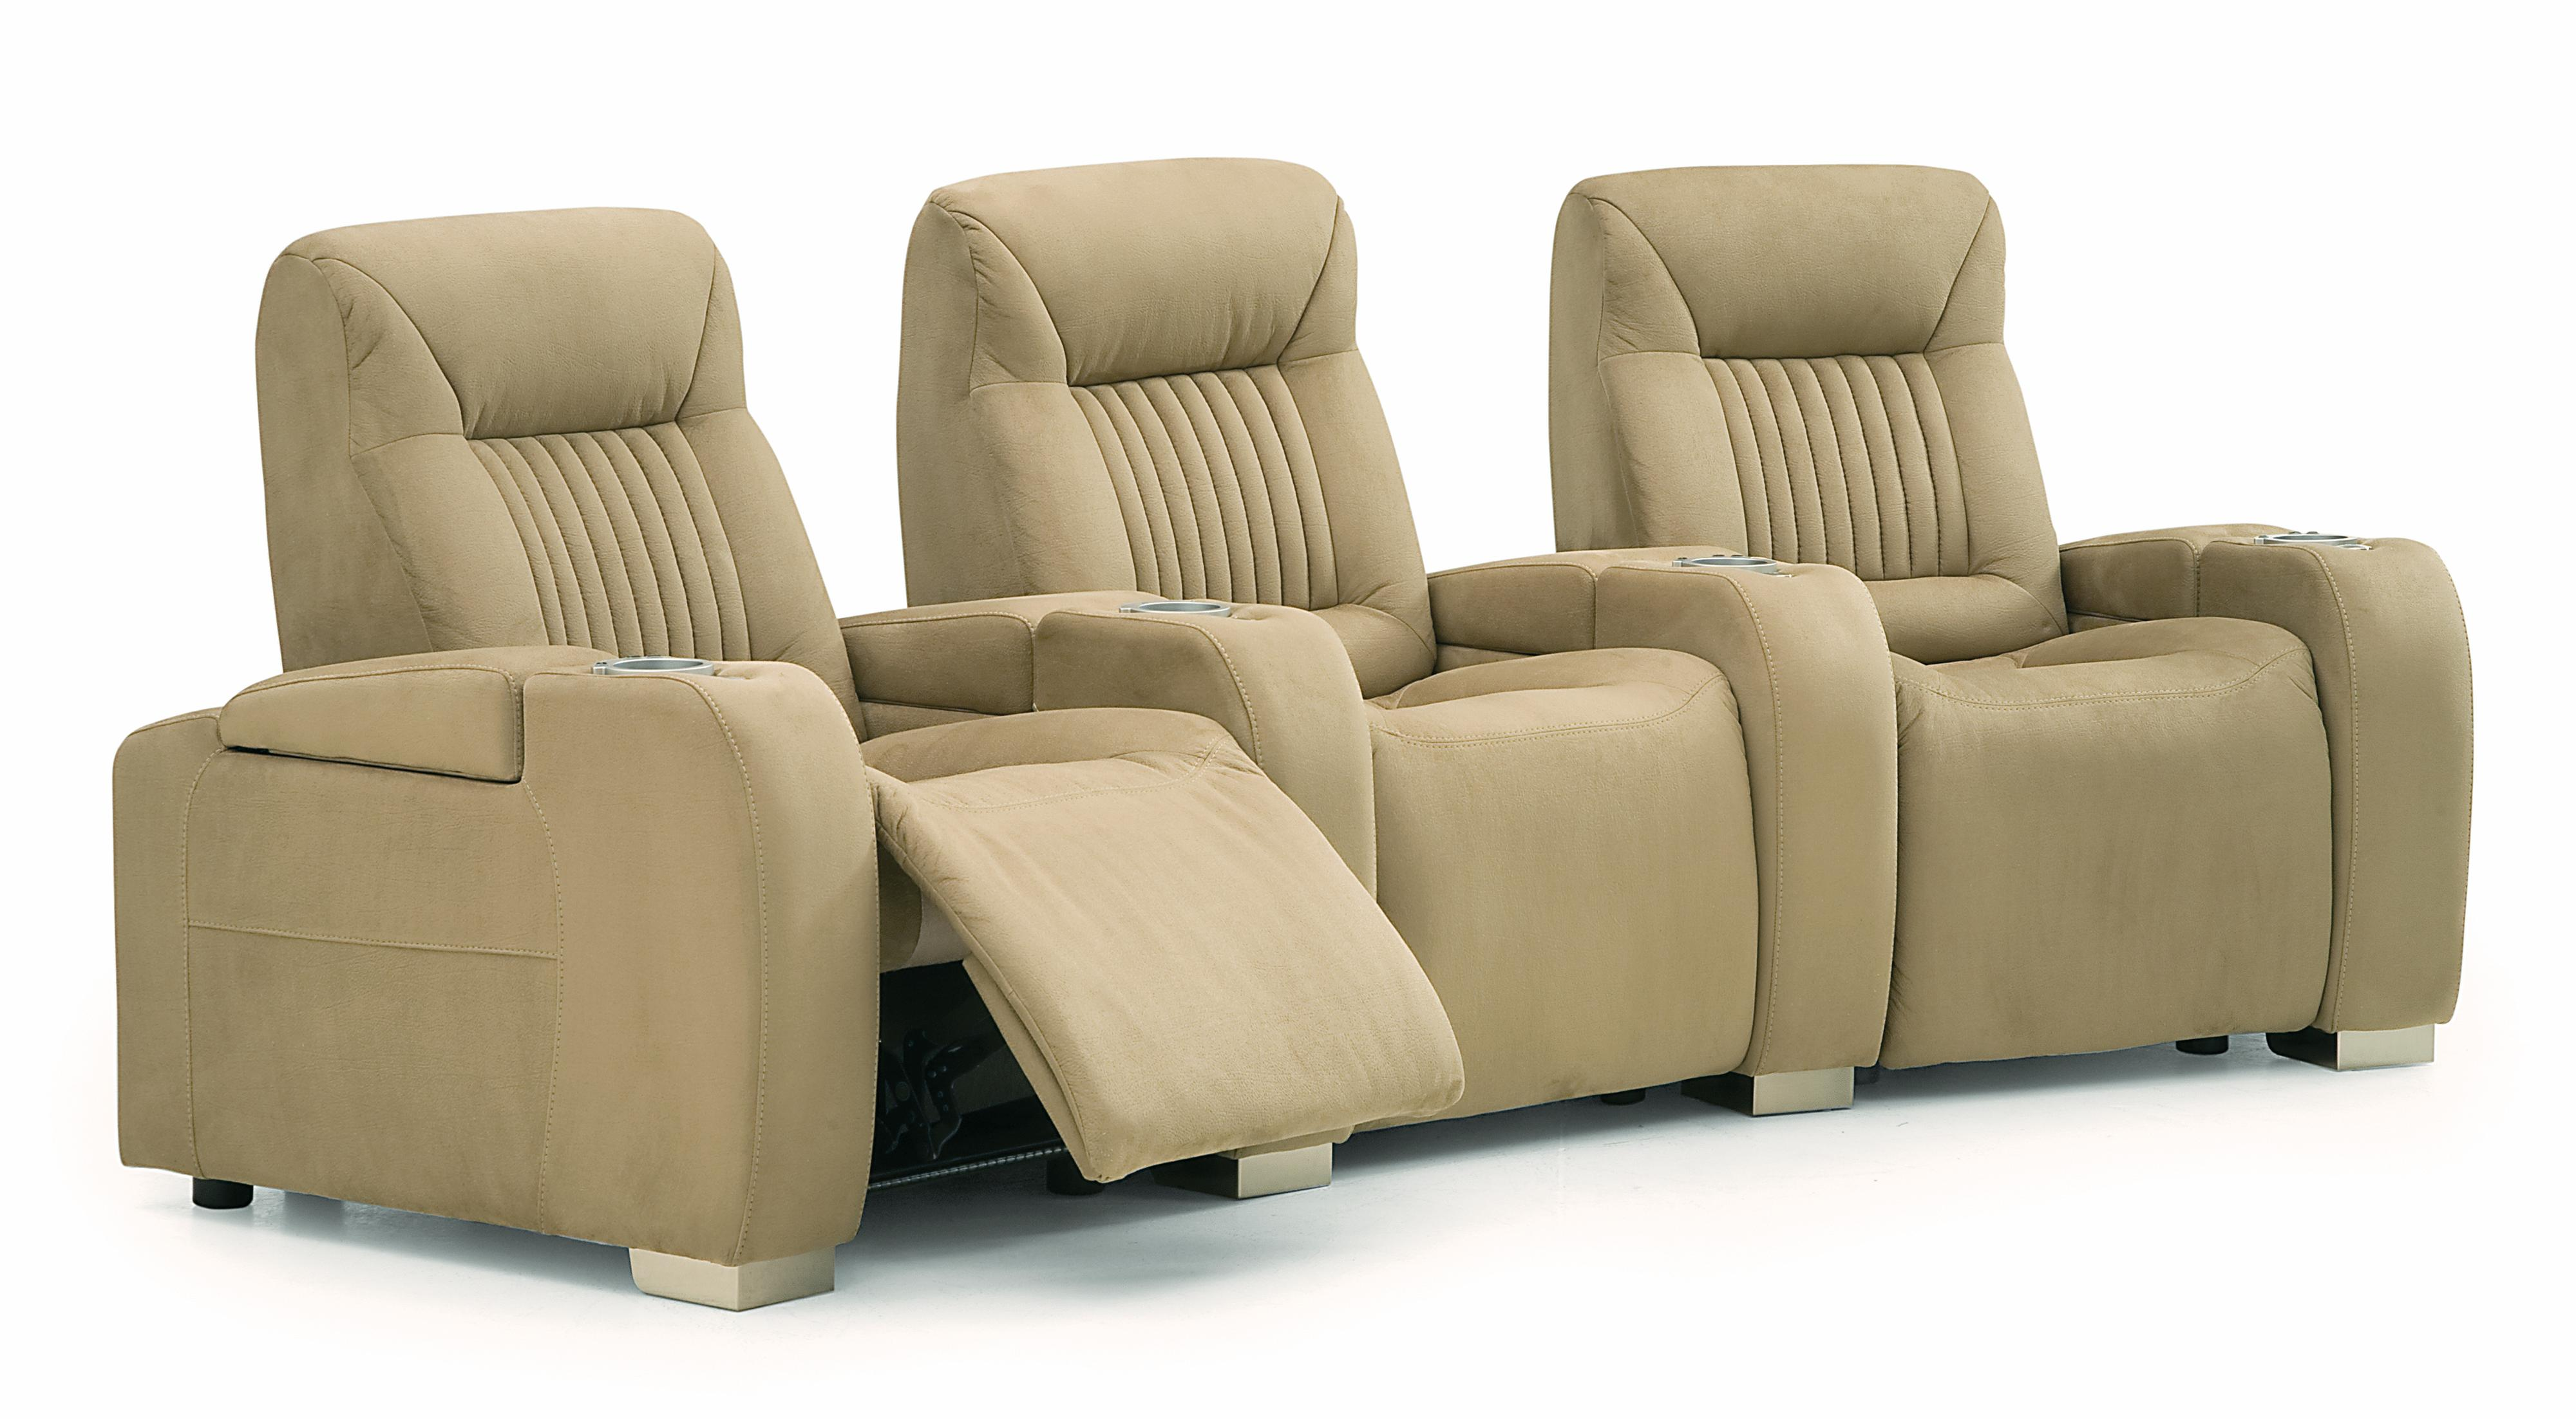 Palliser Autobahn Manual 3 pc. Theather Seating - Item Number: 46954-5R+7R+3R